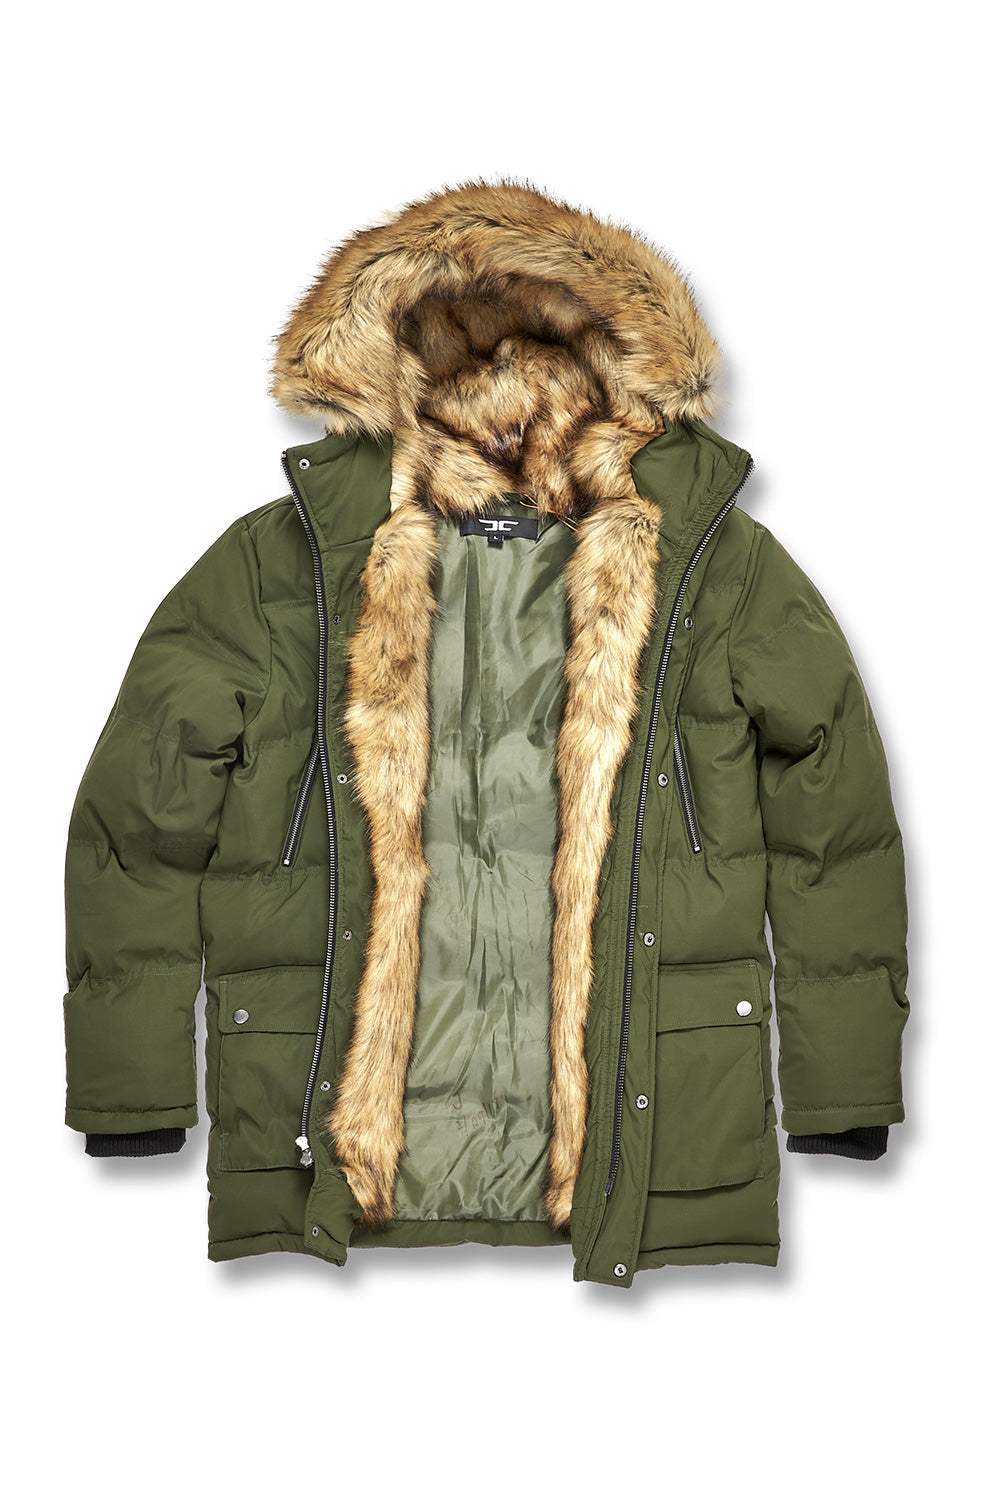 2f1c60532631 Fargo Fur Lined Quilted Parka (Army Green) – Jordan Craig